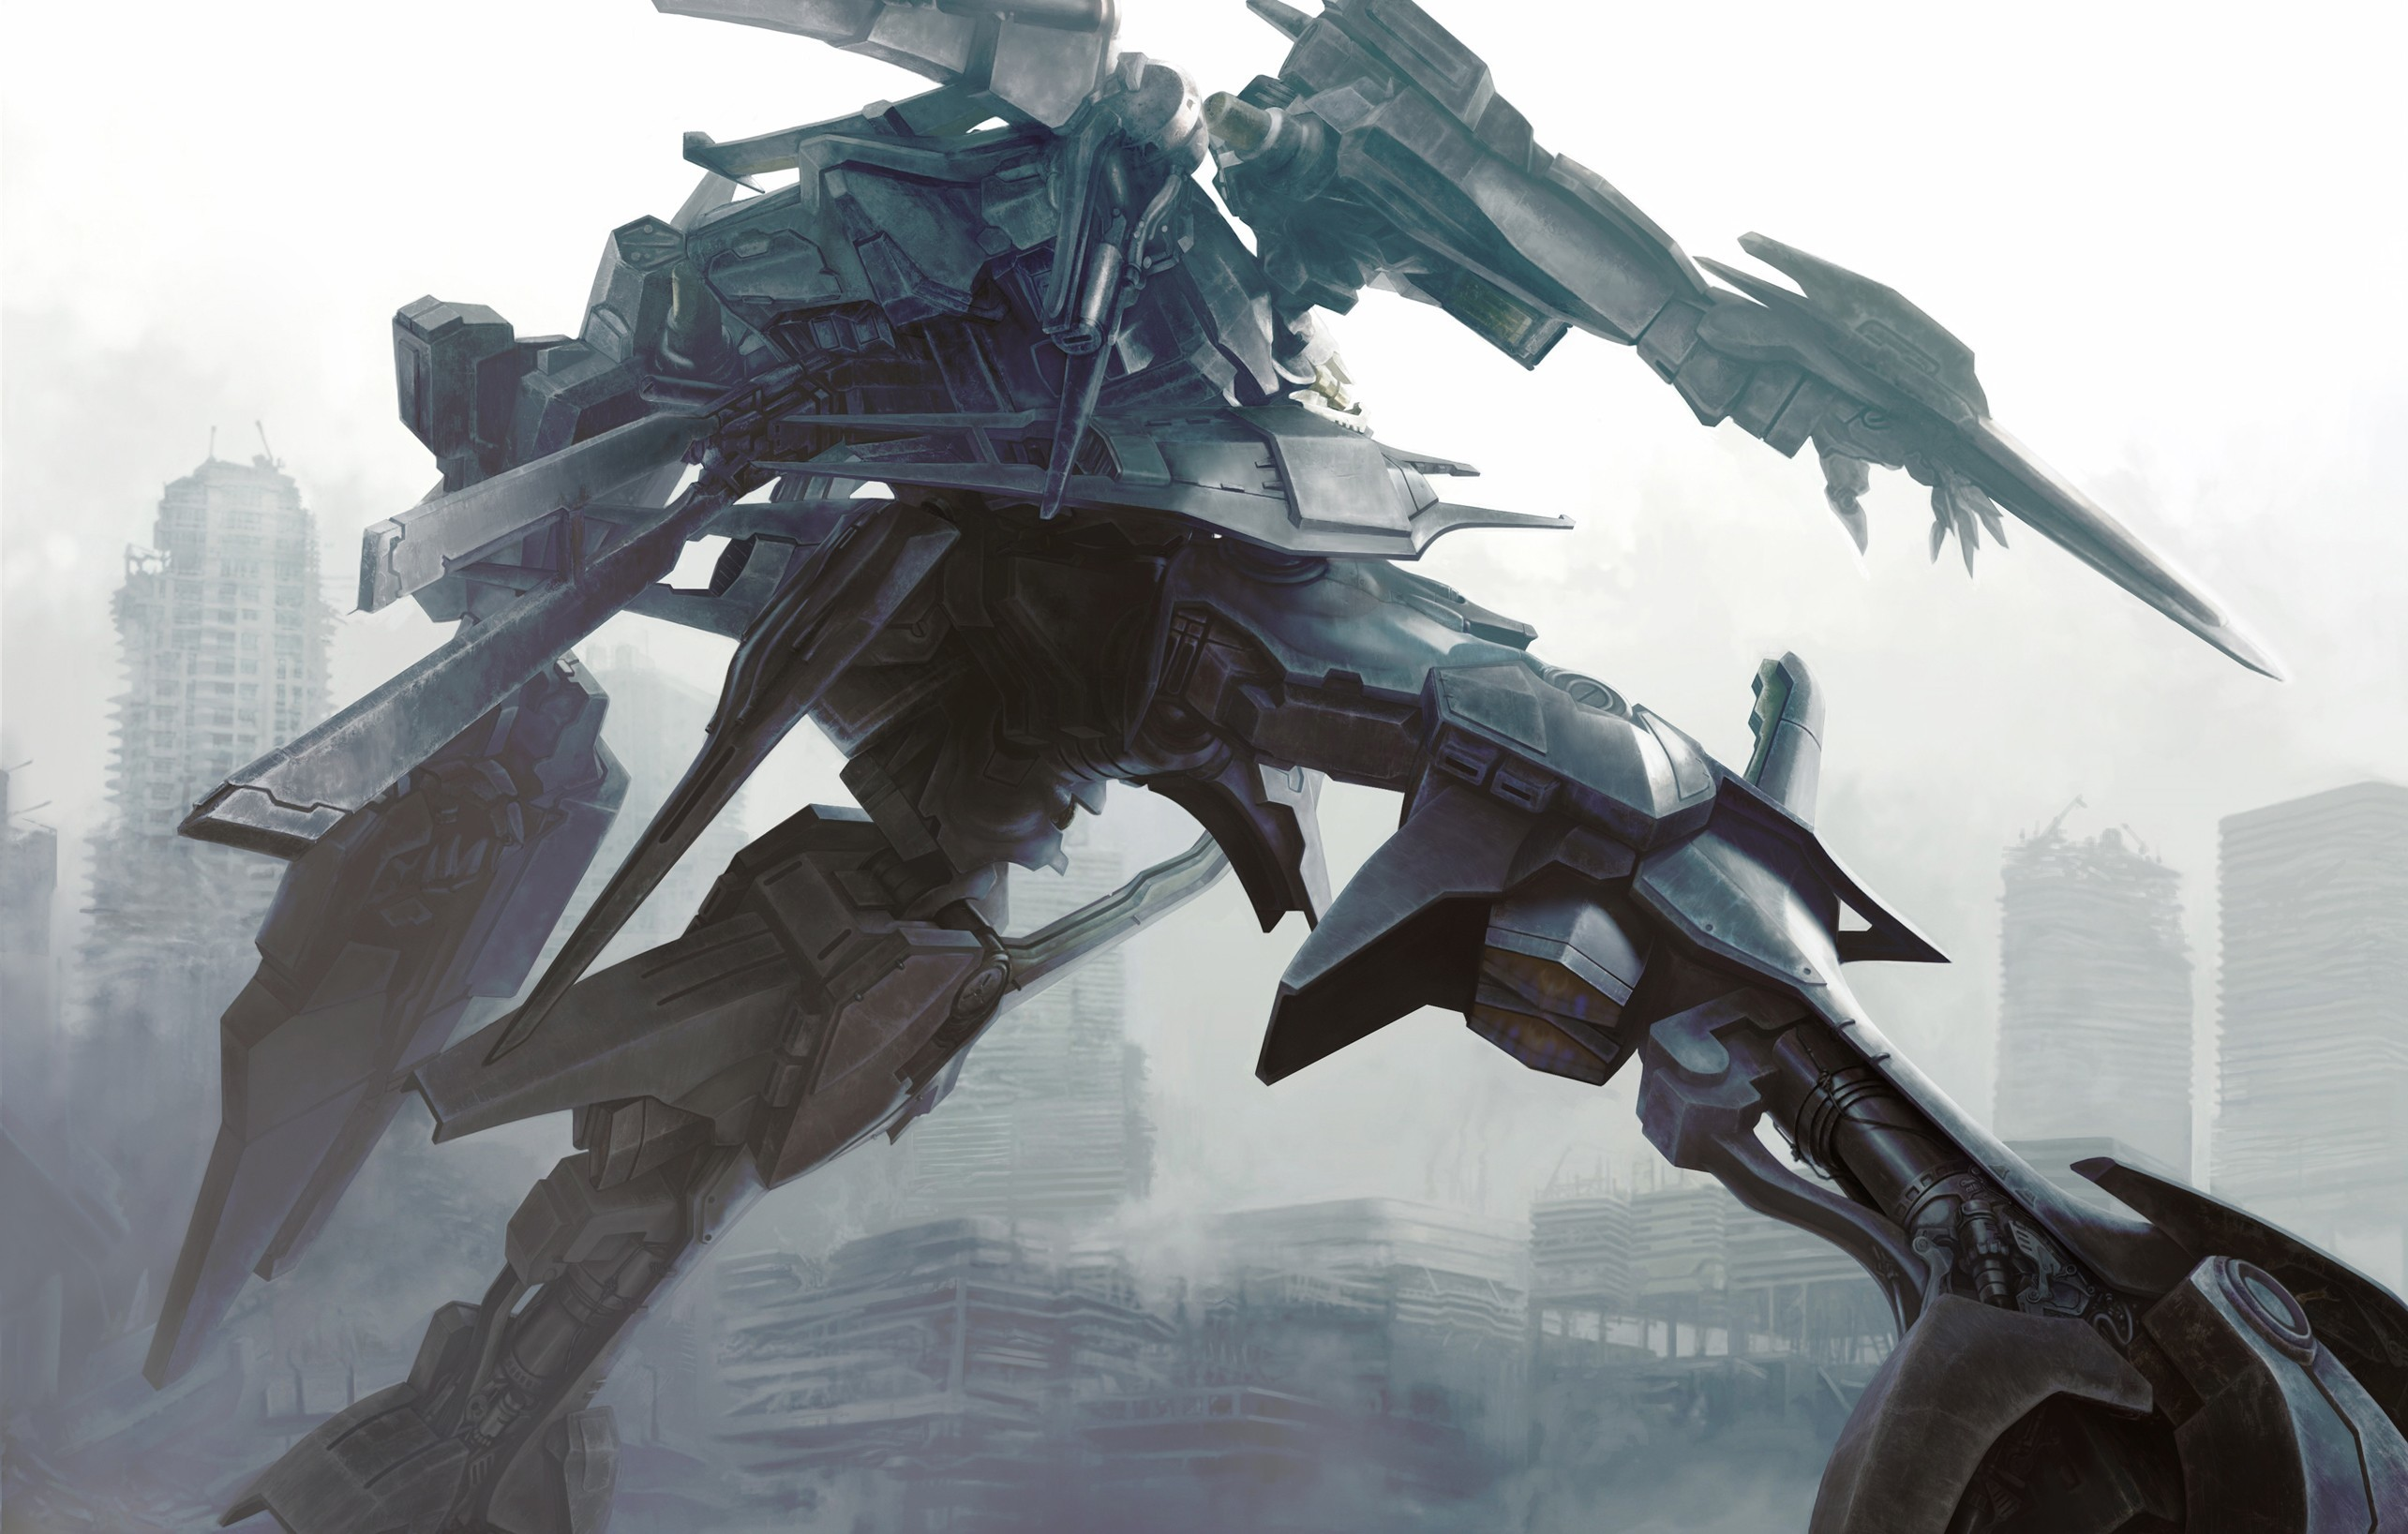 2569x1637 Anime Armored Core Artwork Fantasy Art Mecha Robots free iPhone or Android  Full HD wallpaper.